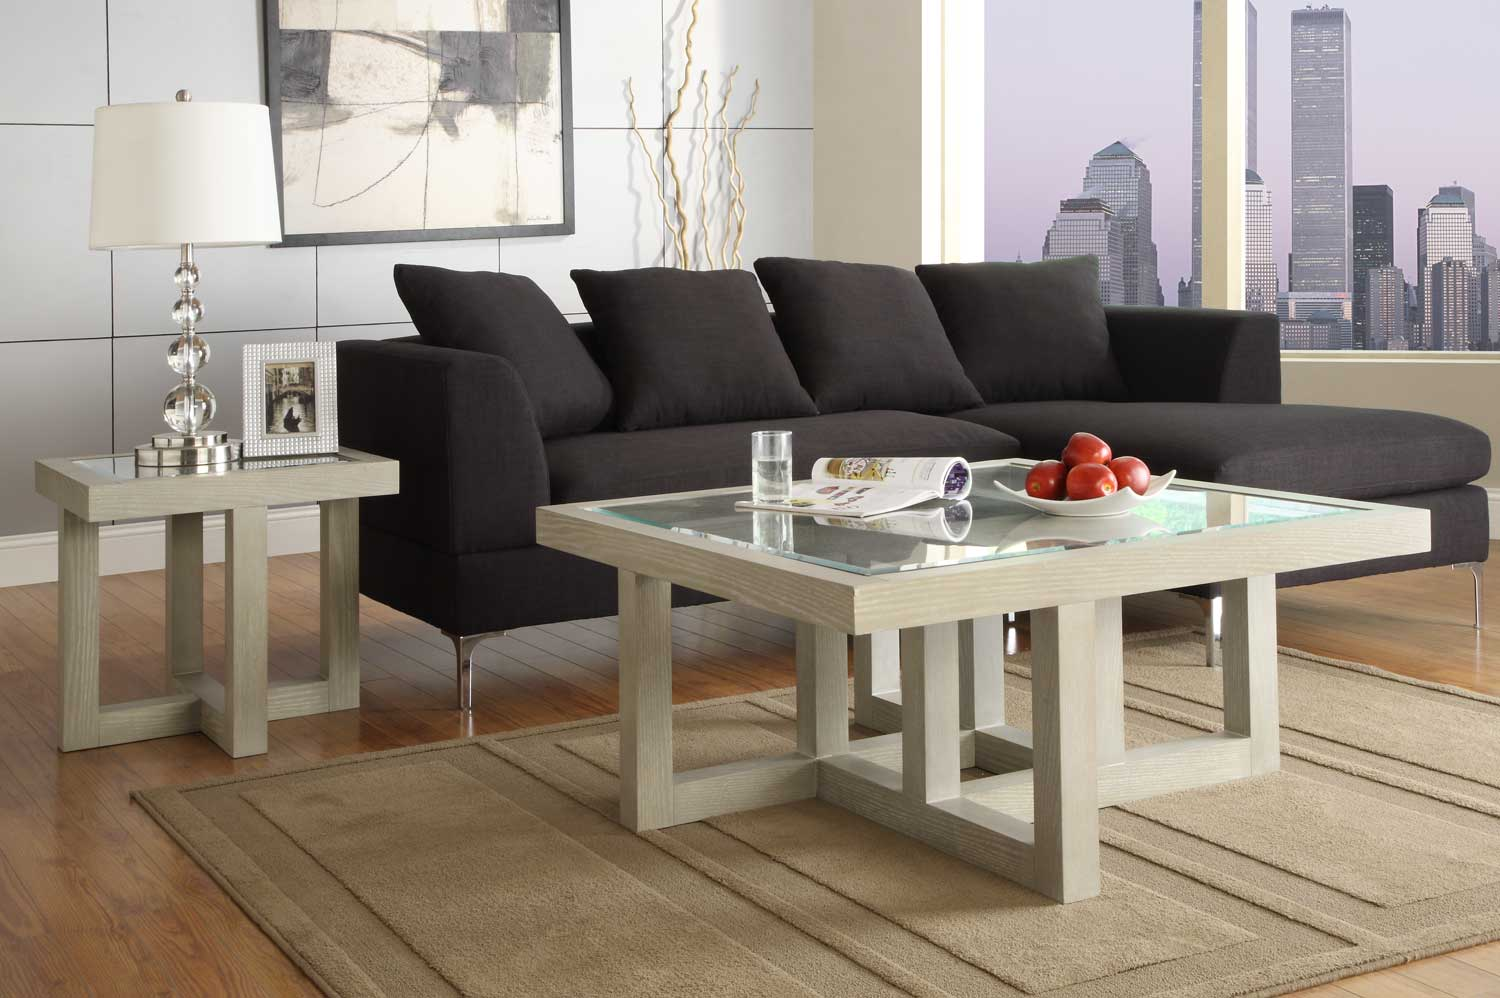 Homelegance Guerrero Square Coffee Table Set - Grey & Homelegance Guerrero Square Coffee Table Set - Grey C3444-01 at ...